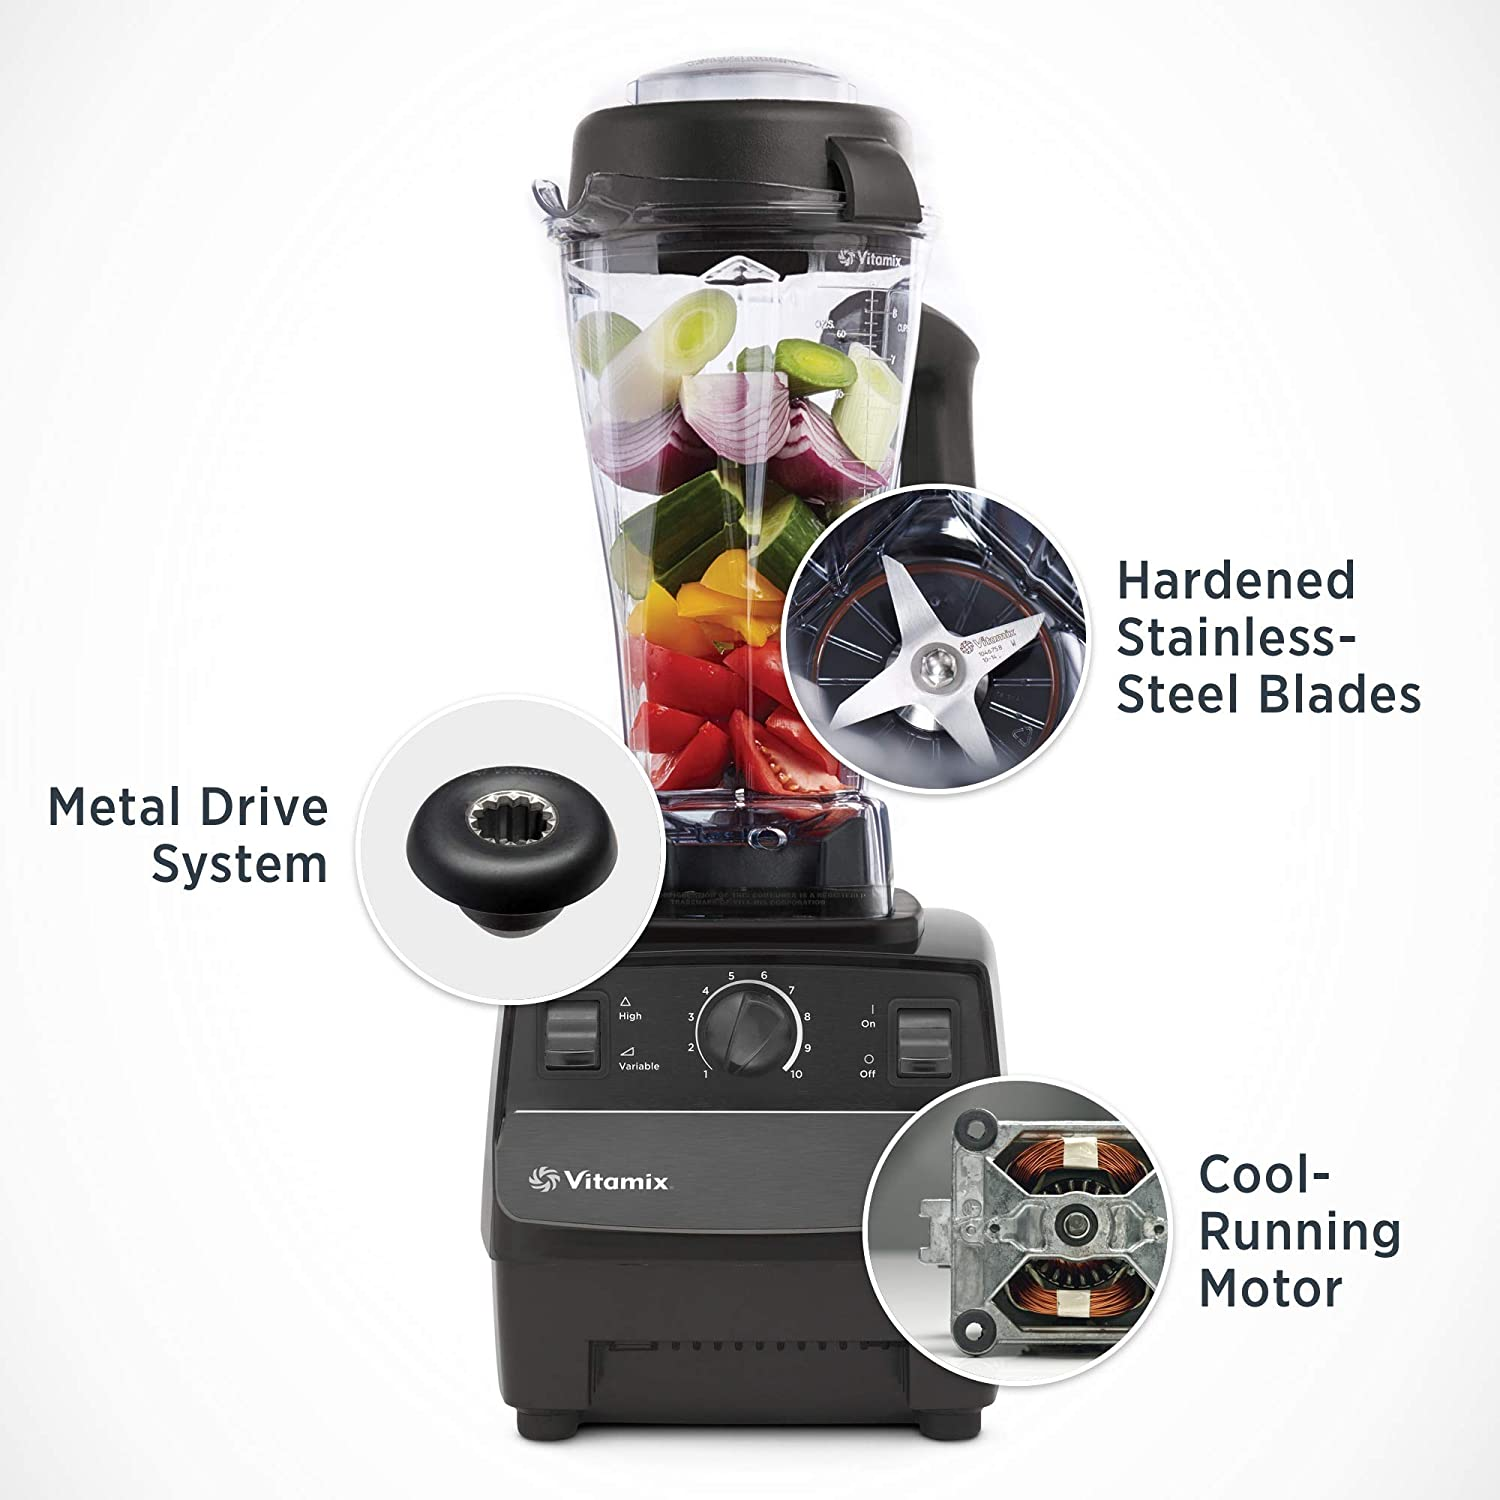 Vitamix 5200 has a metal drive system, hardened stainless-stell blades, and cool-running motor.